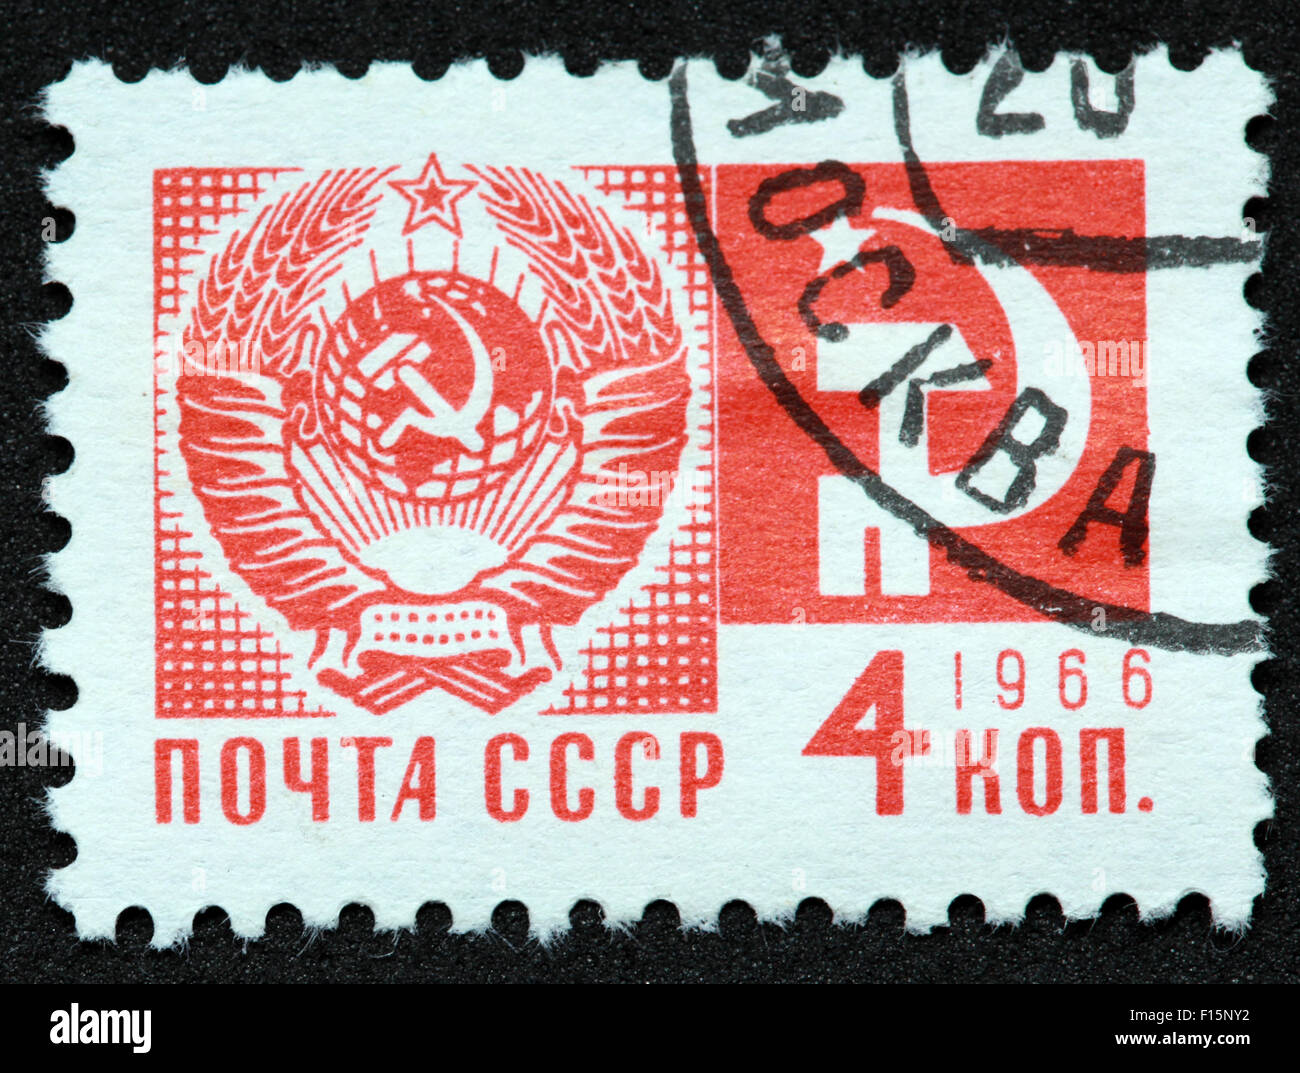 International Post,star,Used and Postmarked,Used,and,postmarked,perforated,stamp,Used,and,postmarked,Stamp,post,posting,mail,hobby,perforation,mark,postage,stamp,print,stamp,cancelled,stamp,payment,correspondence,postman,collection,collector,phila,USSR,Soviet,Bloc,Block,East,Eastern,Europe,Russia,Yuri Gagarin,Space,program,Moscow,Rouble,Russian,Gotonysmith,post,posting,mail,hobby,perforation,mark,postage,stamp,print,stamp,cancelled,canceled,stamp,payment,correspondence,postman,collection,collector,philately,philatelist,letter,price,history,retro,Australian,Vintage,delivery,date,relationship,communication,Oz,Australia,DownUnder,classic,rare,unique,Austrailian,financial,investment,invest,value,British,empire,nation,canceled,printed,on,black,background,close-up,closeup,close,up,sent,send,philately,mailing,shipping,postoffice,office,isolated,circa,special,colour,color,postmarked,marked,airmail,aged,antique,retro,cutting,historic,old,stamps,collection,stamp collection,album,Timbre,Sello,Stempel,Selo,Buy Pictures of,Buy Images Of,Down Under,Black background